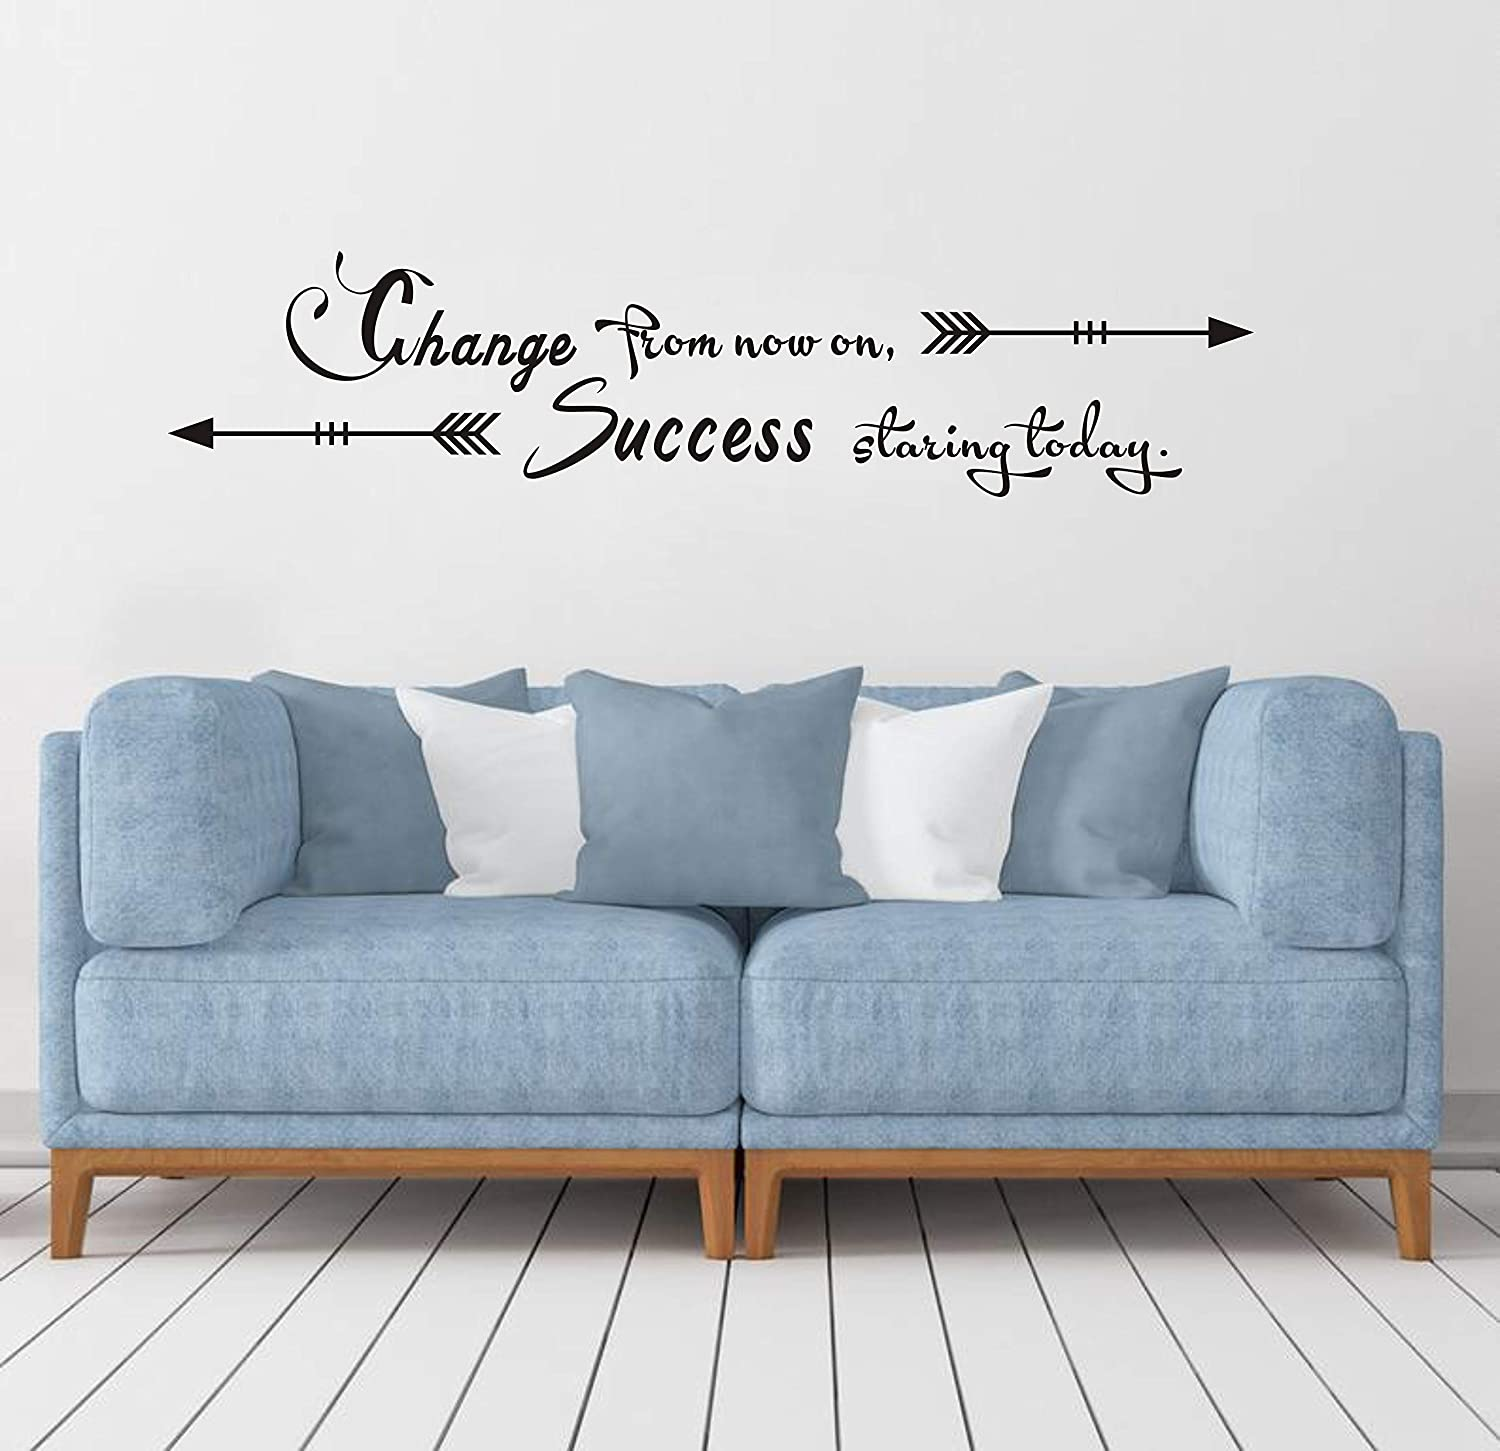 Change from Now on, Success Starting Today Quote Wall Decal Letters Wall Decor Inspirational Wall Stickers Removable Vinyl Wall Art for Home Room DDK27 (Black)